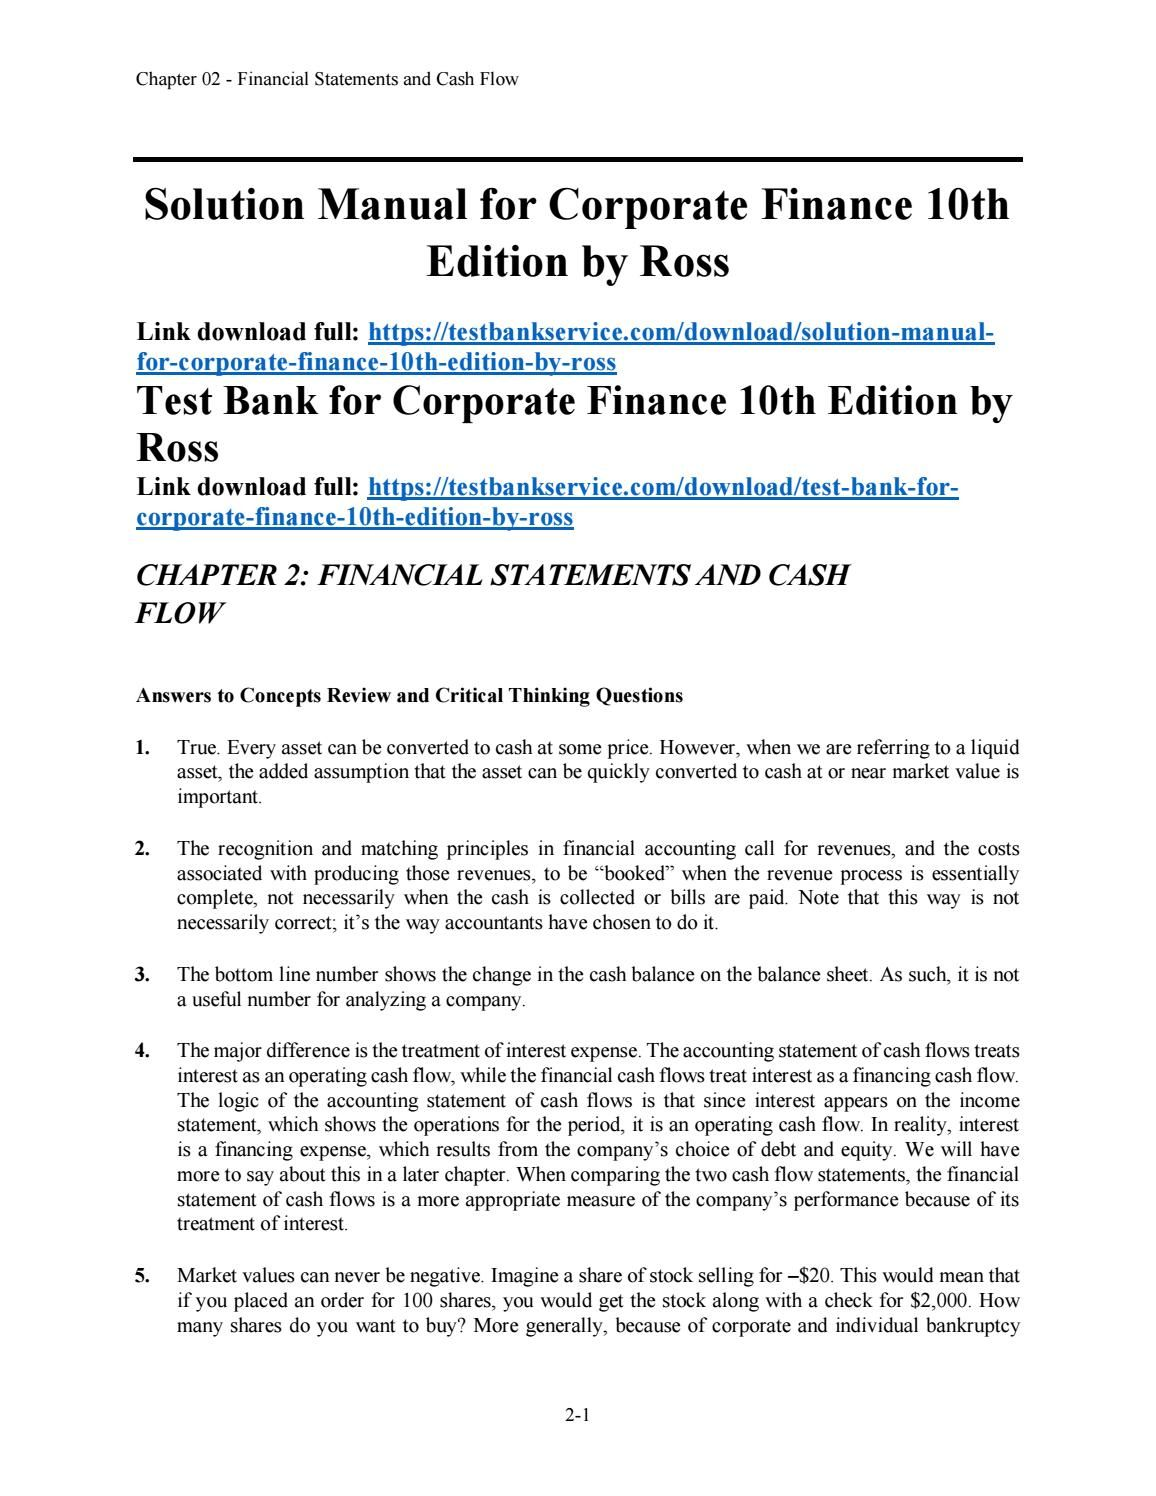 solution manual for corporate finance breadly 10th edition